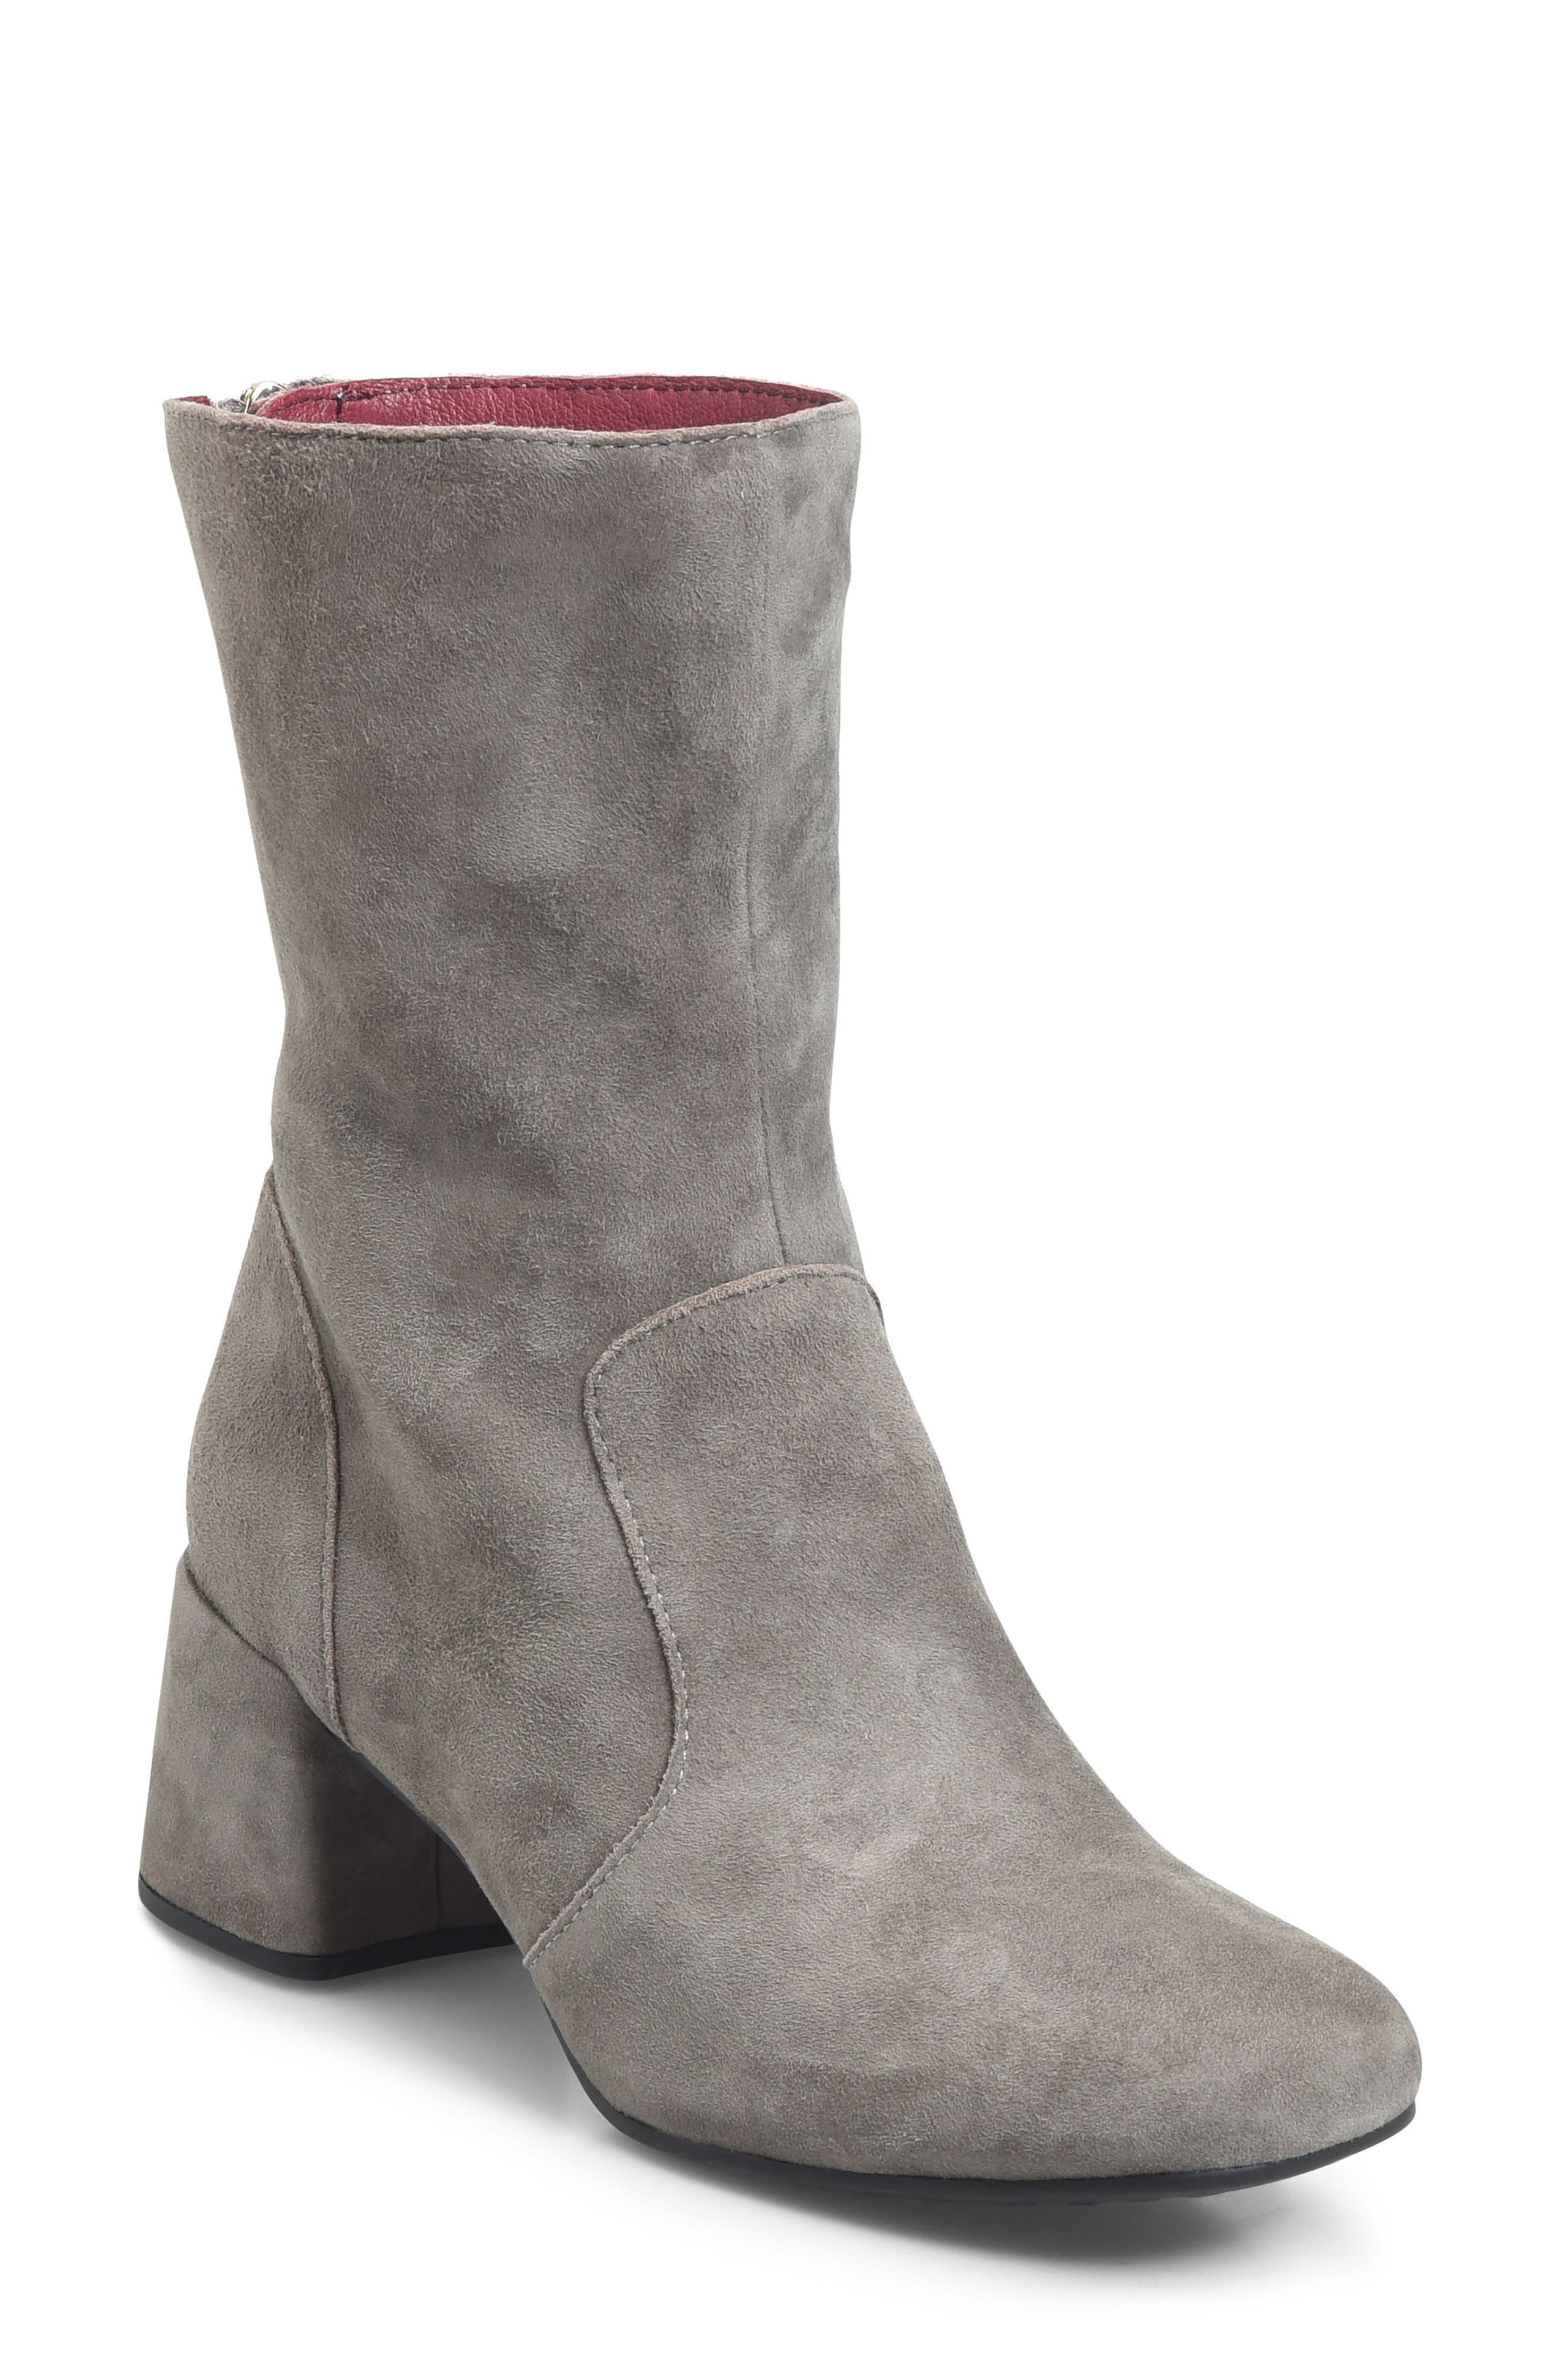 Ono Florence Bootie- Grey